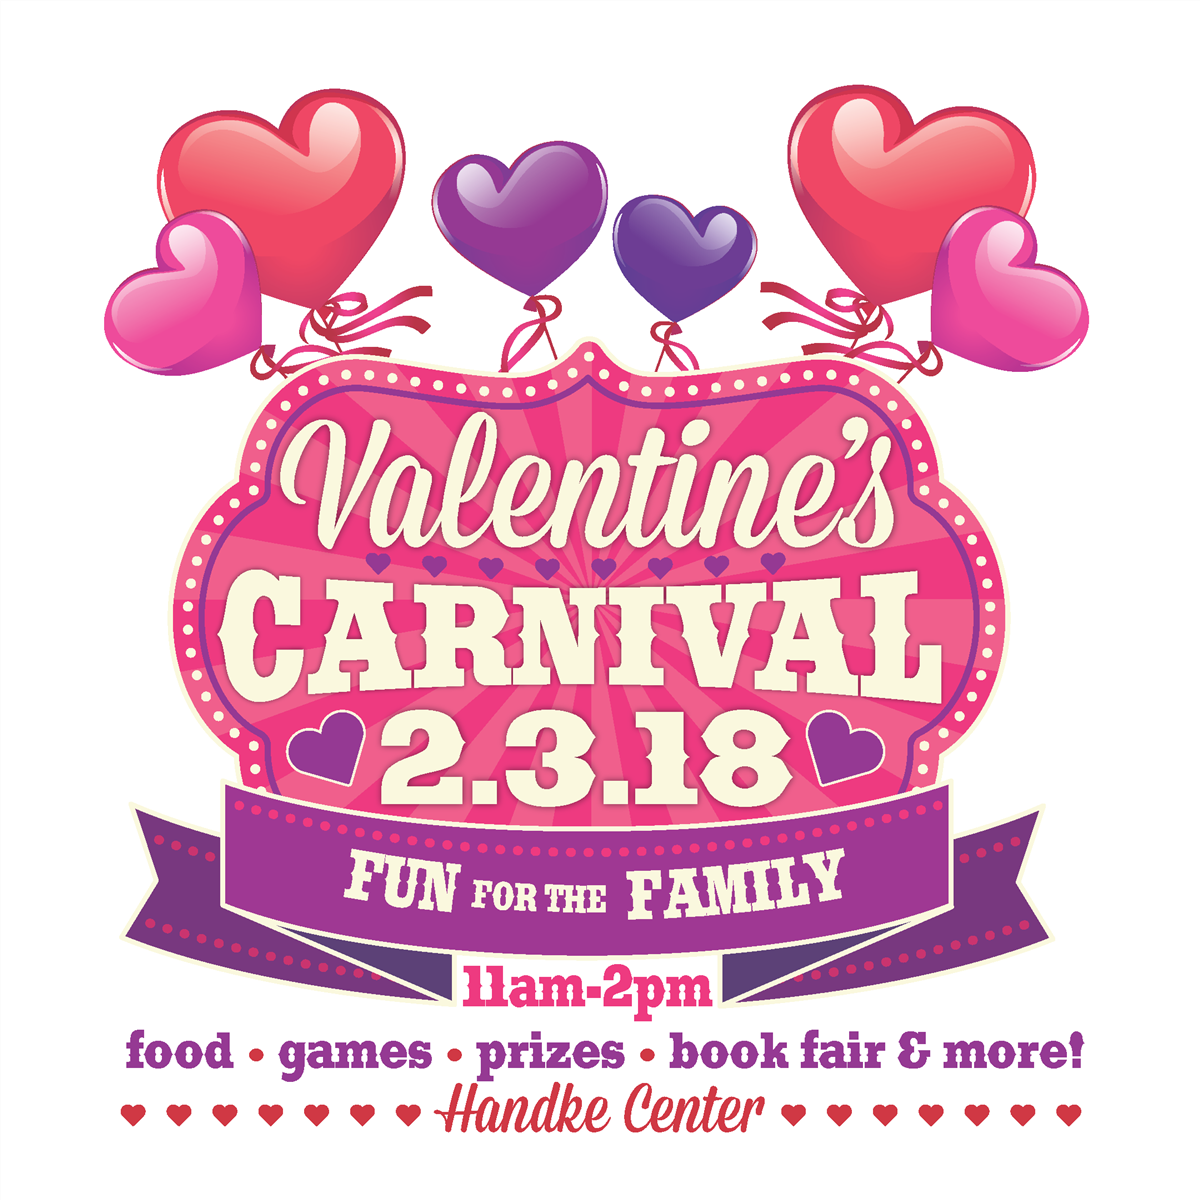 Volunteer at the ECFE Valentine's Carnival!